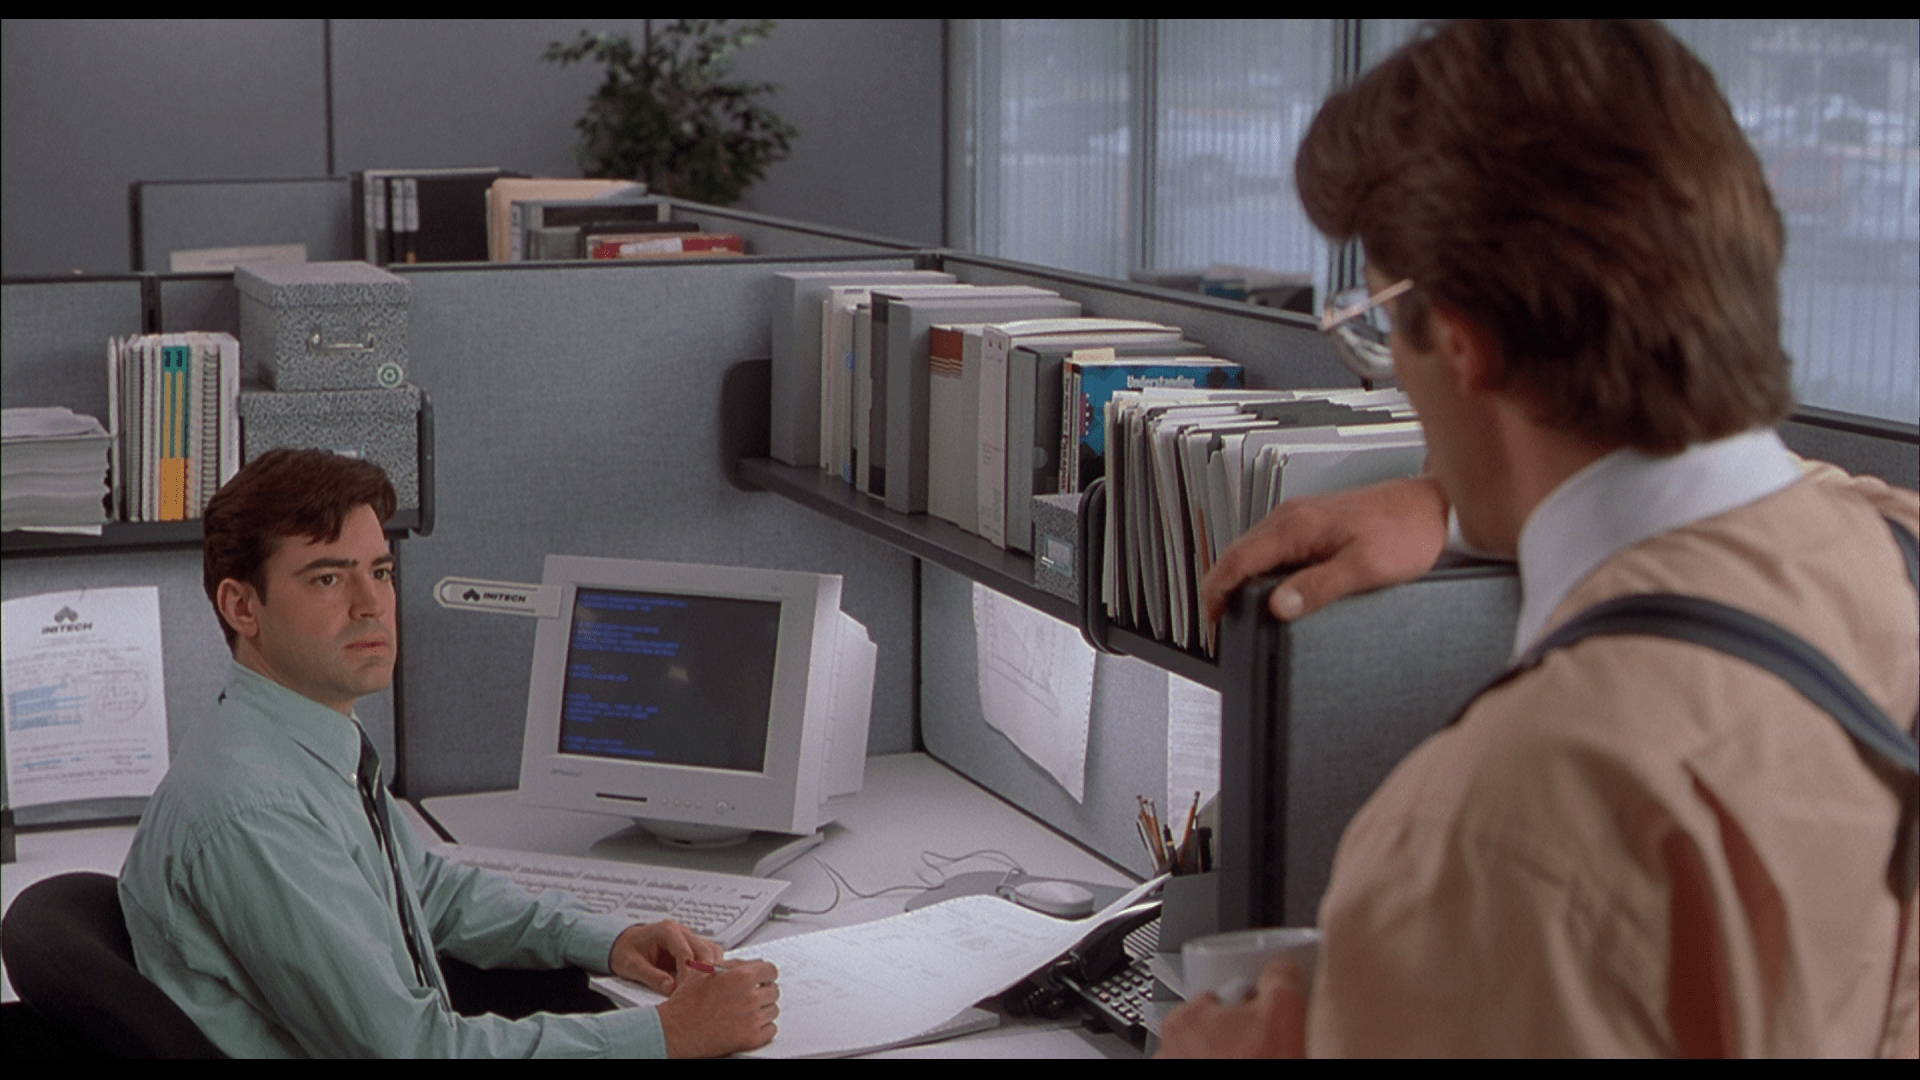 Download Office Space Wallpaper 1920x1080 Gallery